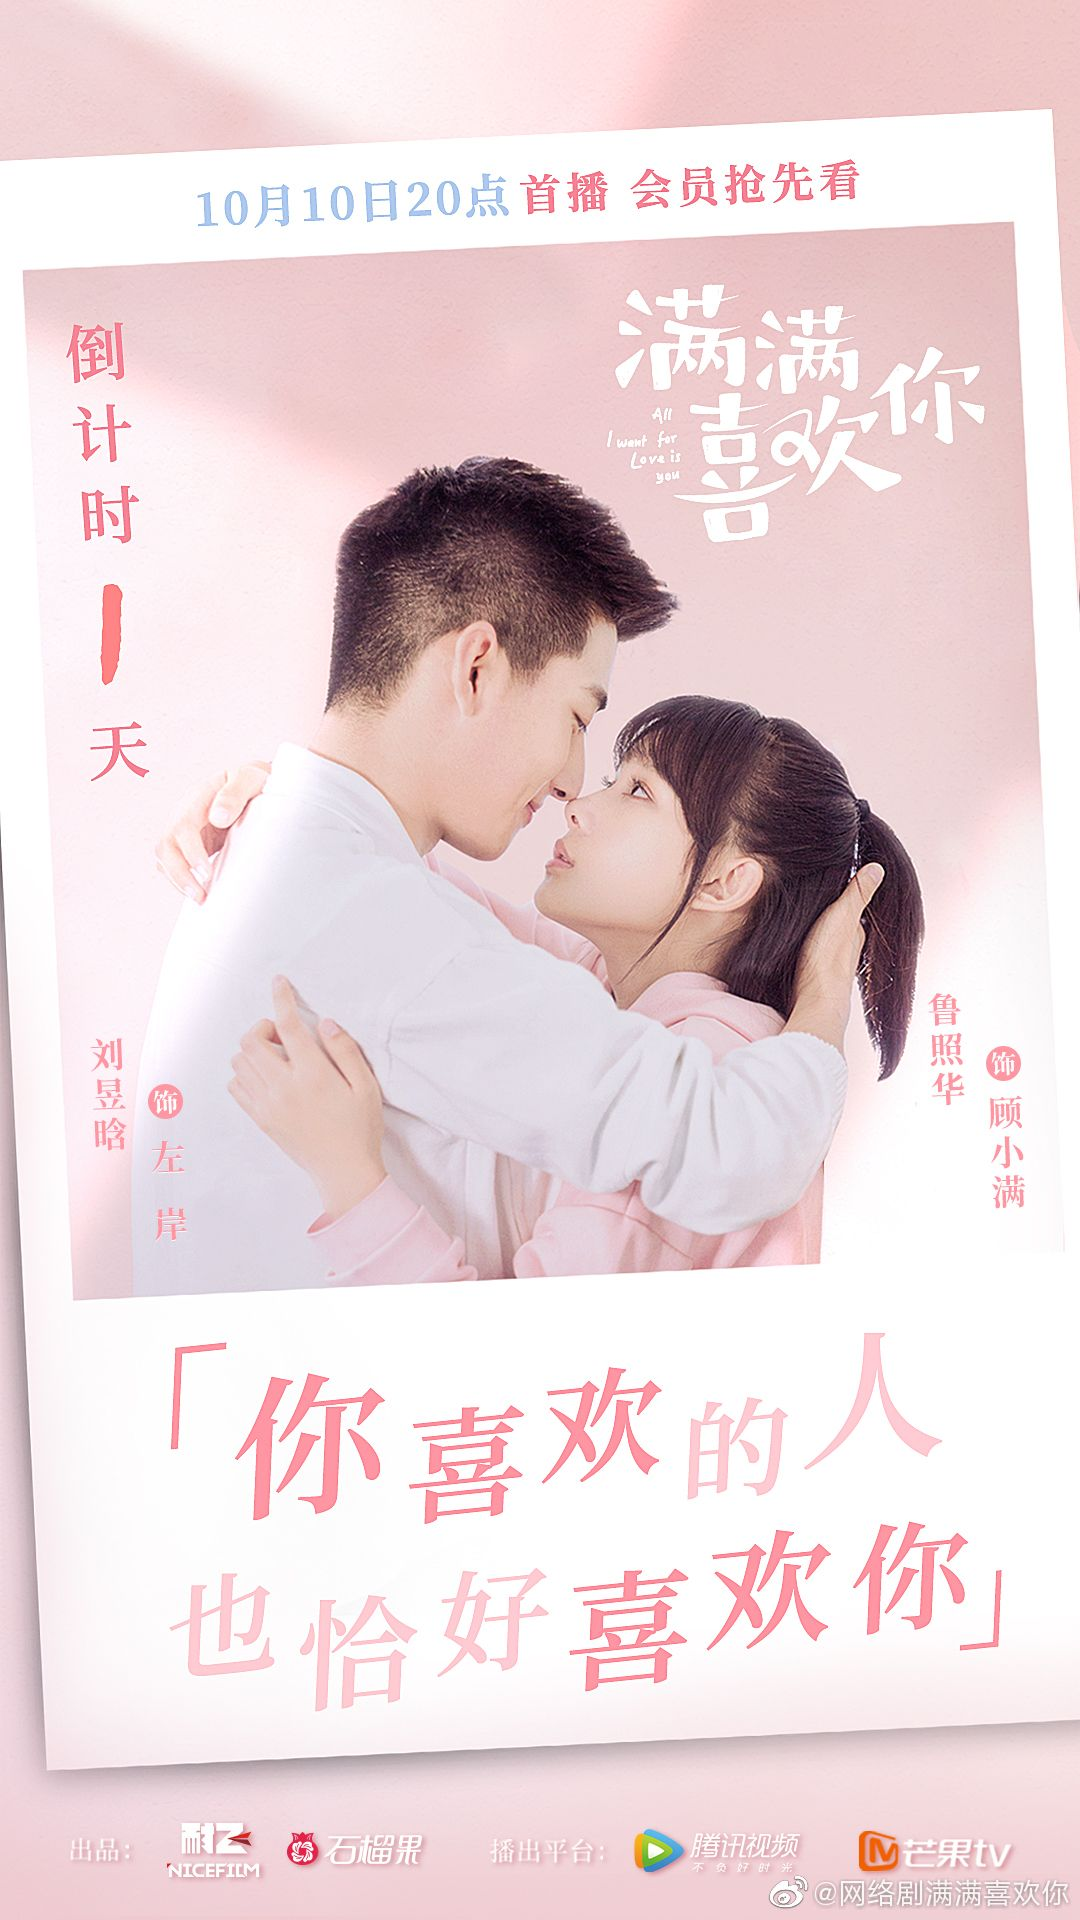 All I Want For Love Is You Summary C Drama Love Show Summary How To Show Love Drama School All I Want